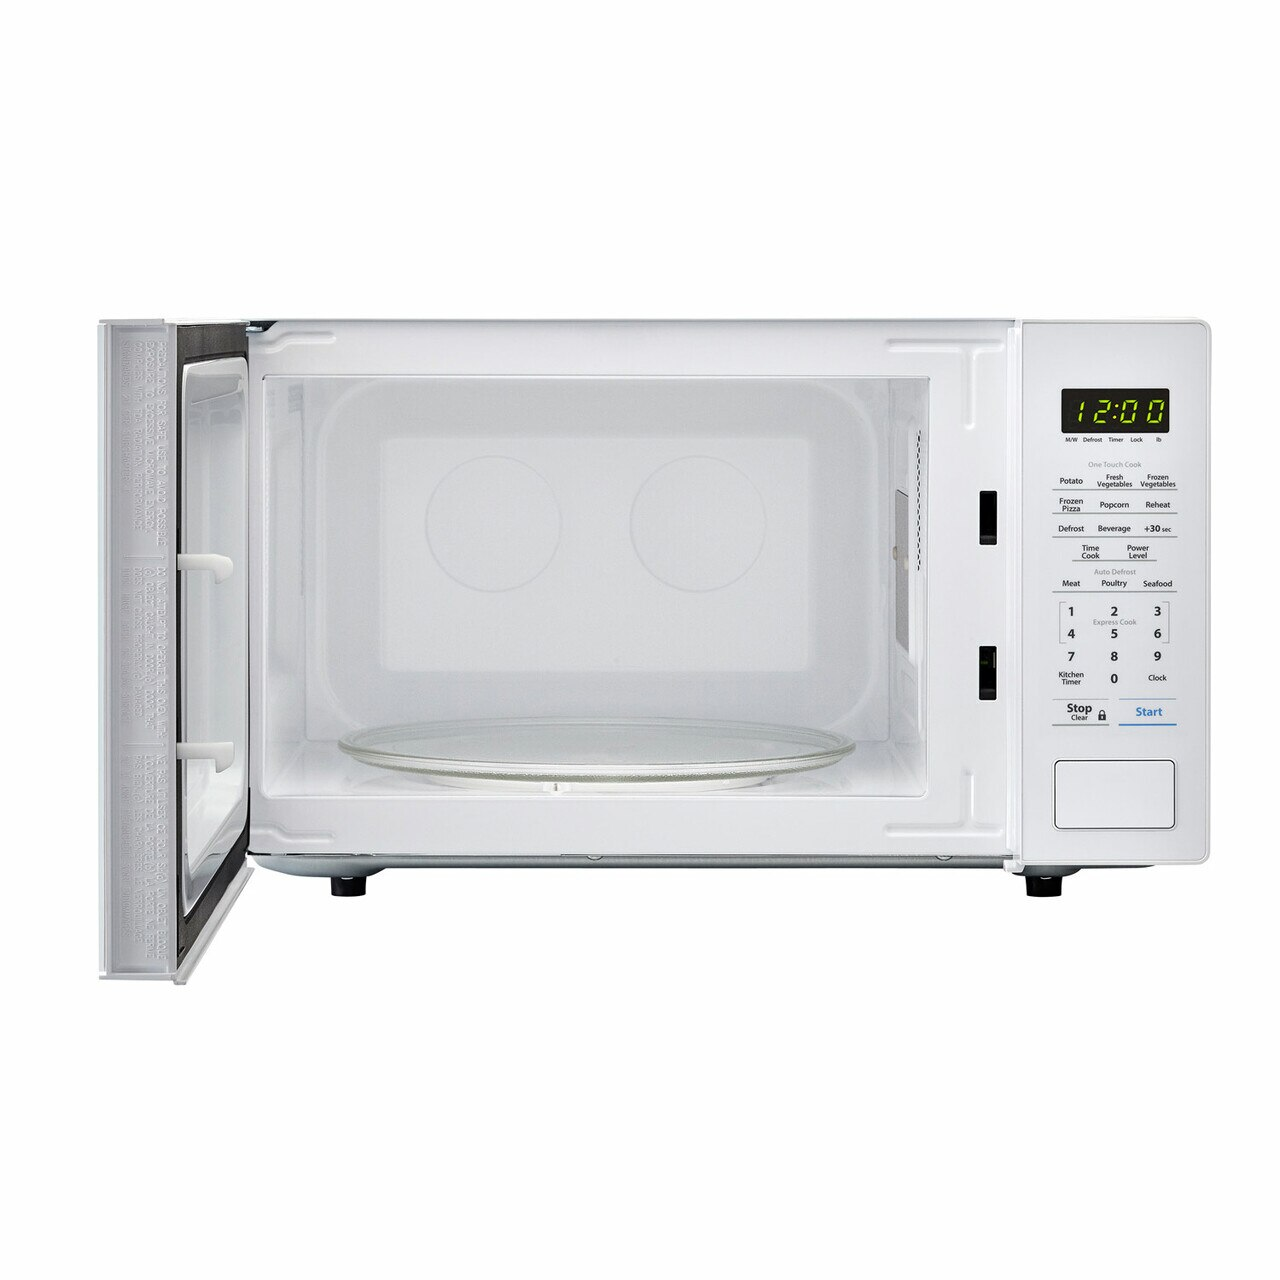 1.1 cu. ft. Sharp White Countertop Microwave (SMC1131CW) – front view with door open